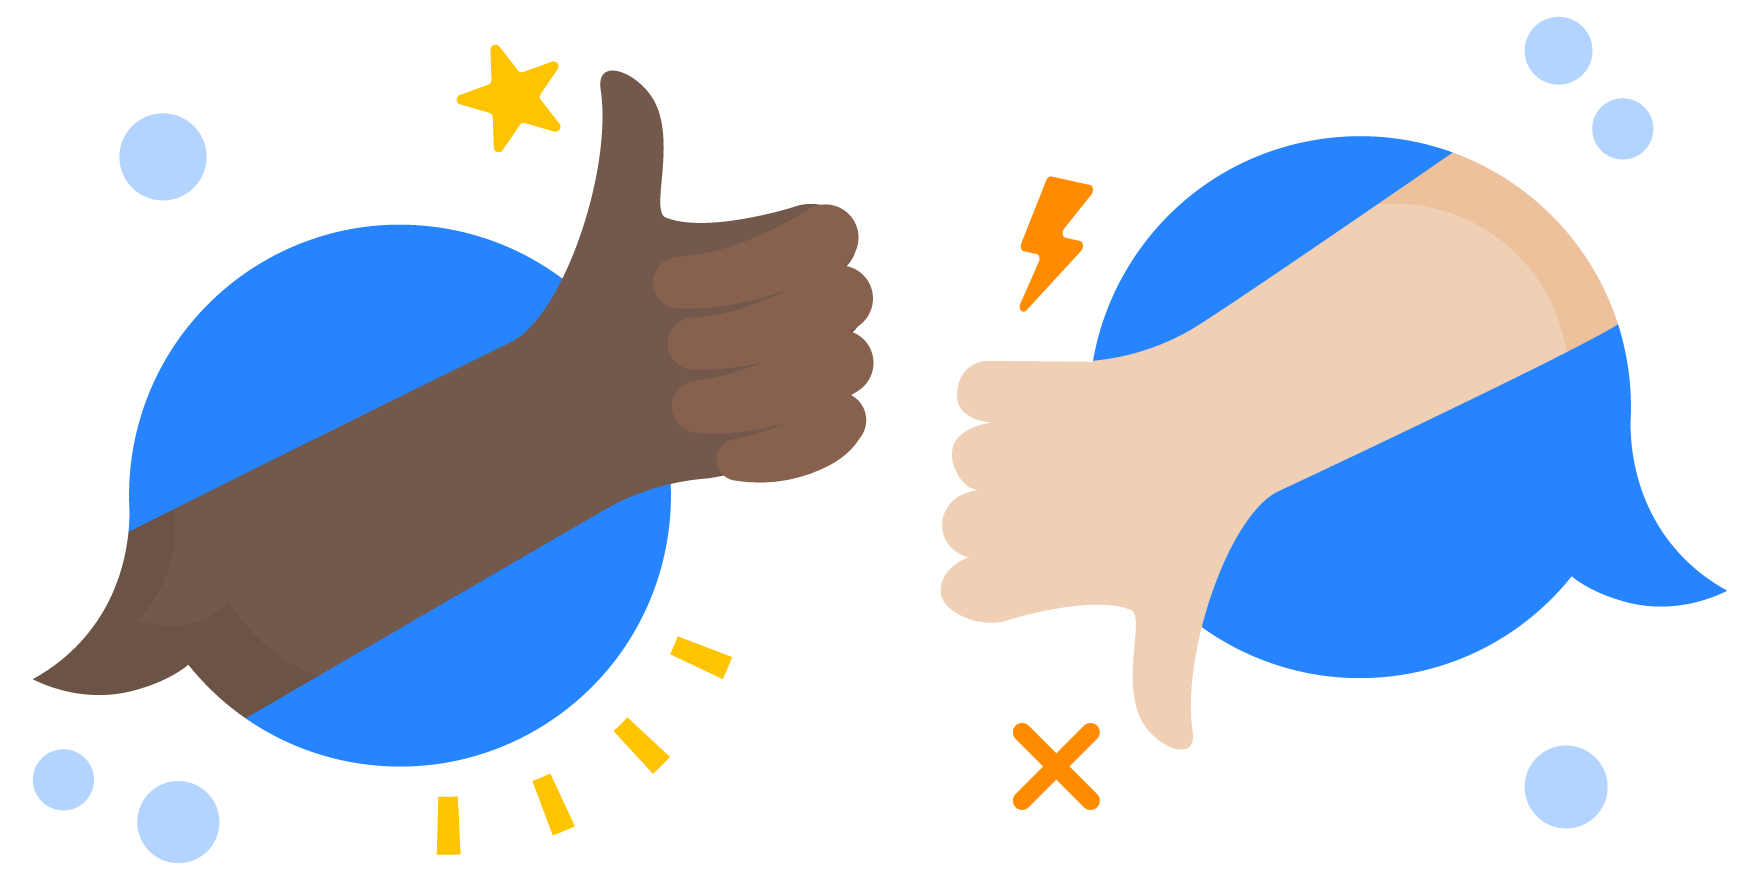 How to get peer feedback that will dramatically improve your work